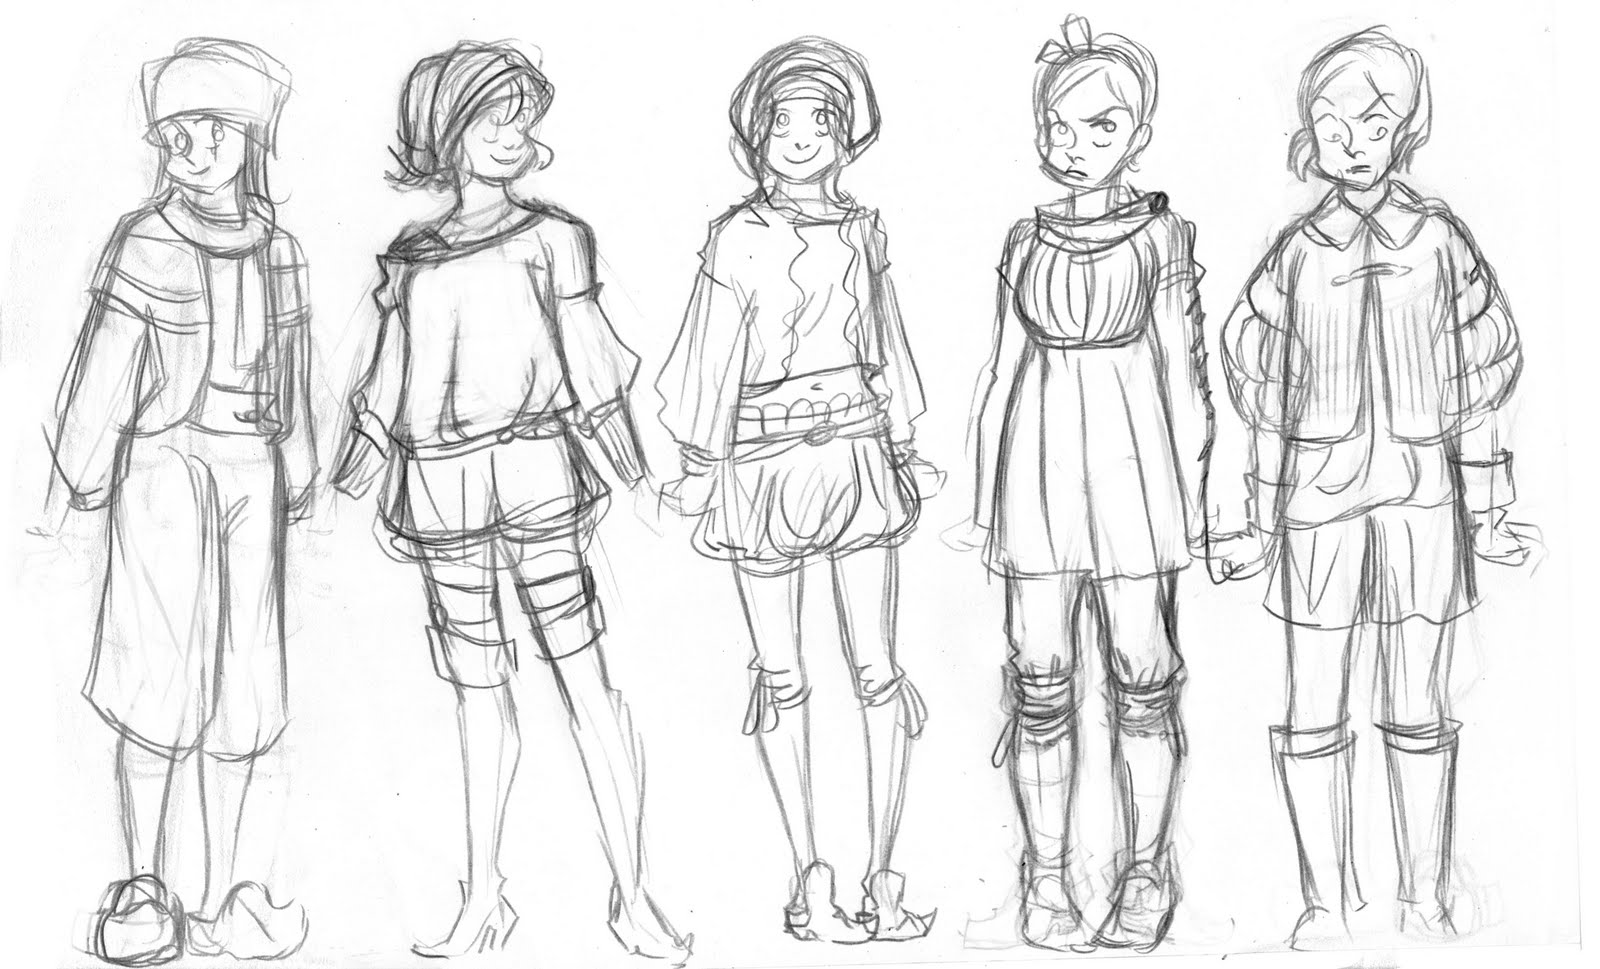 Manga Tomboy Outfits Since we are already voting